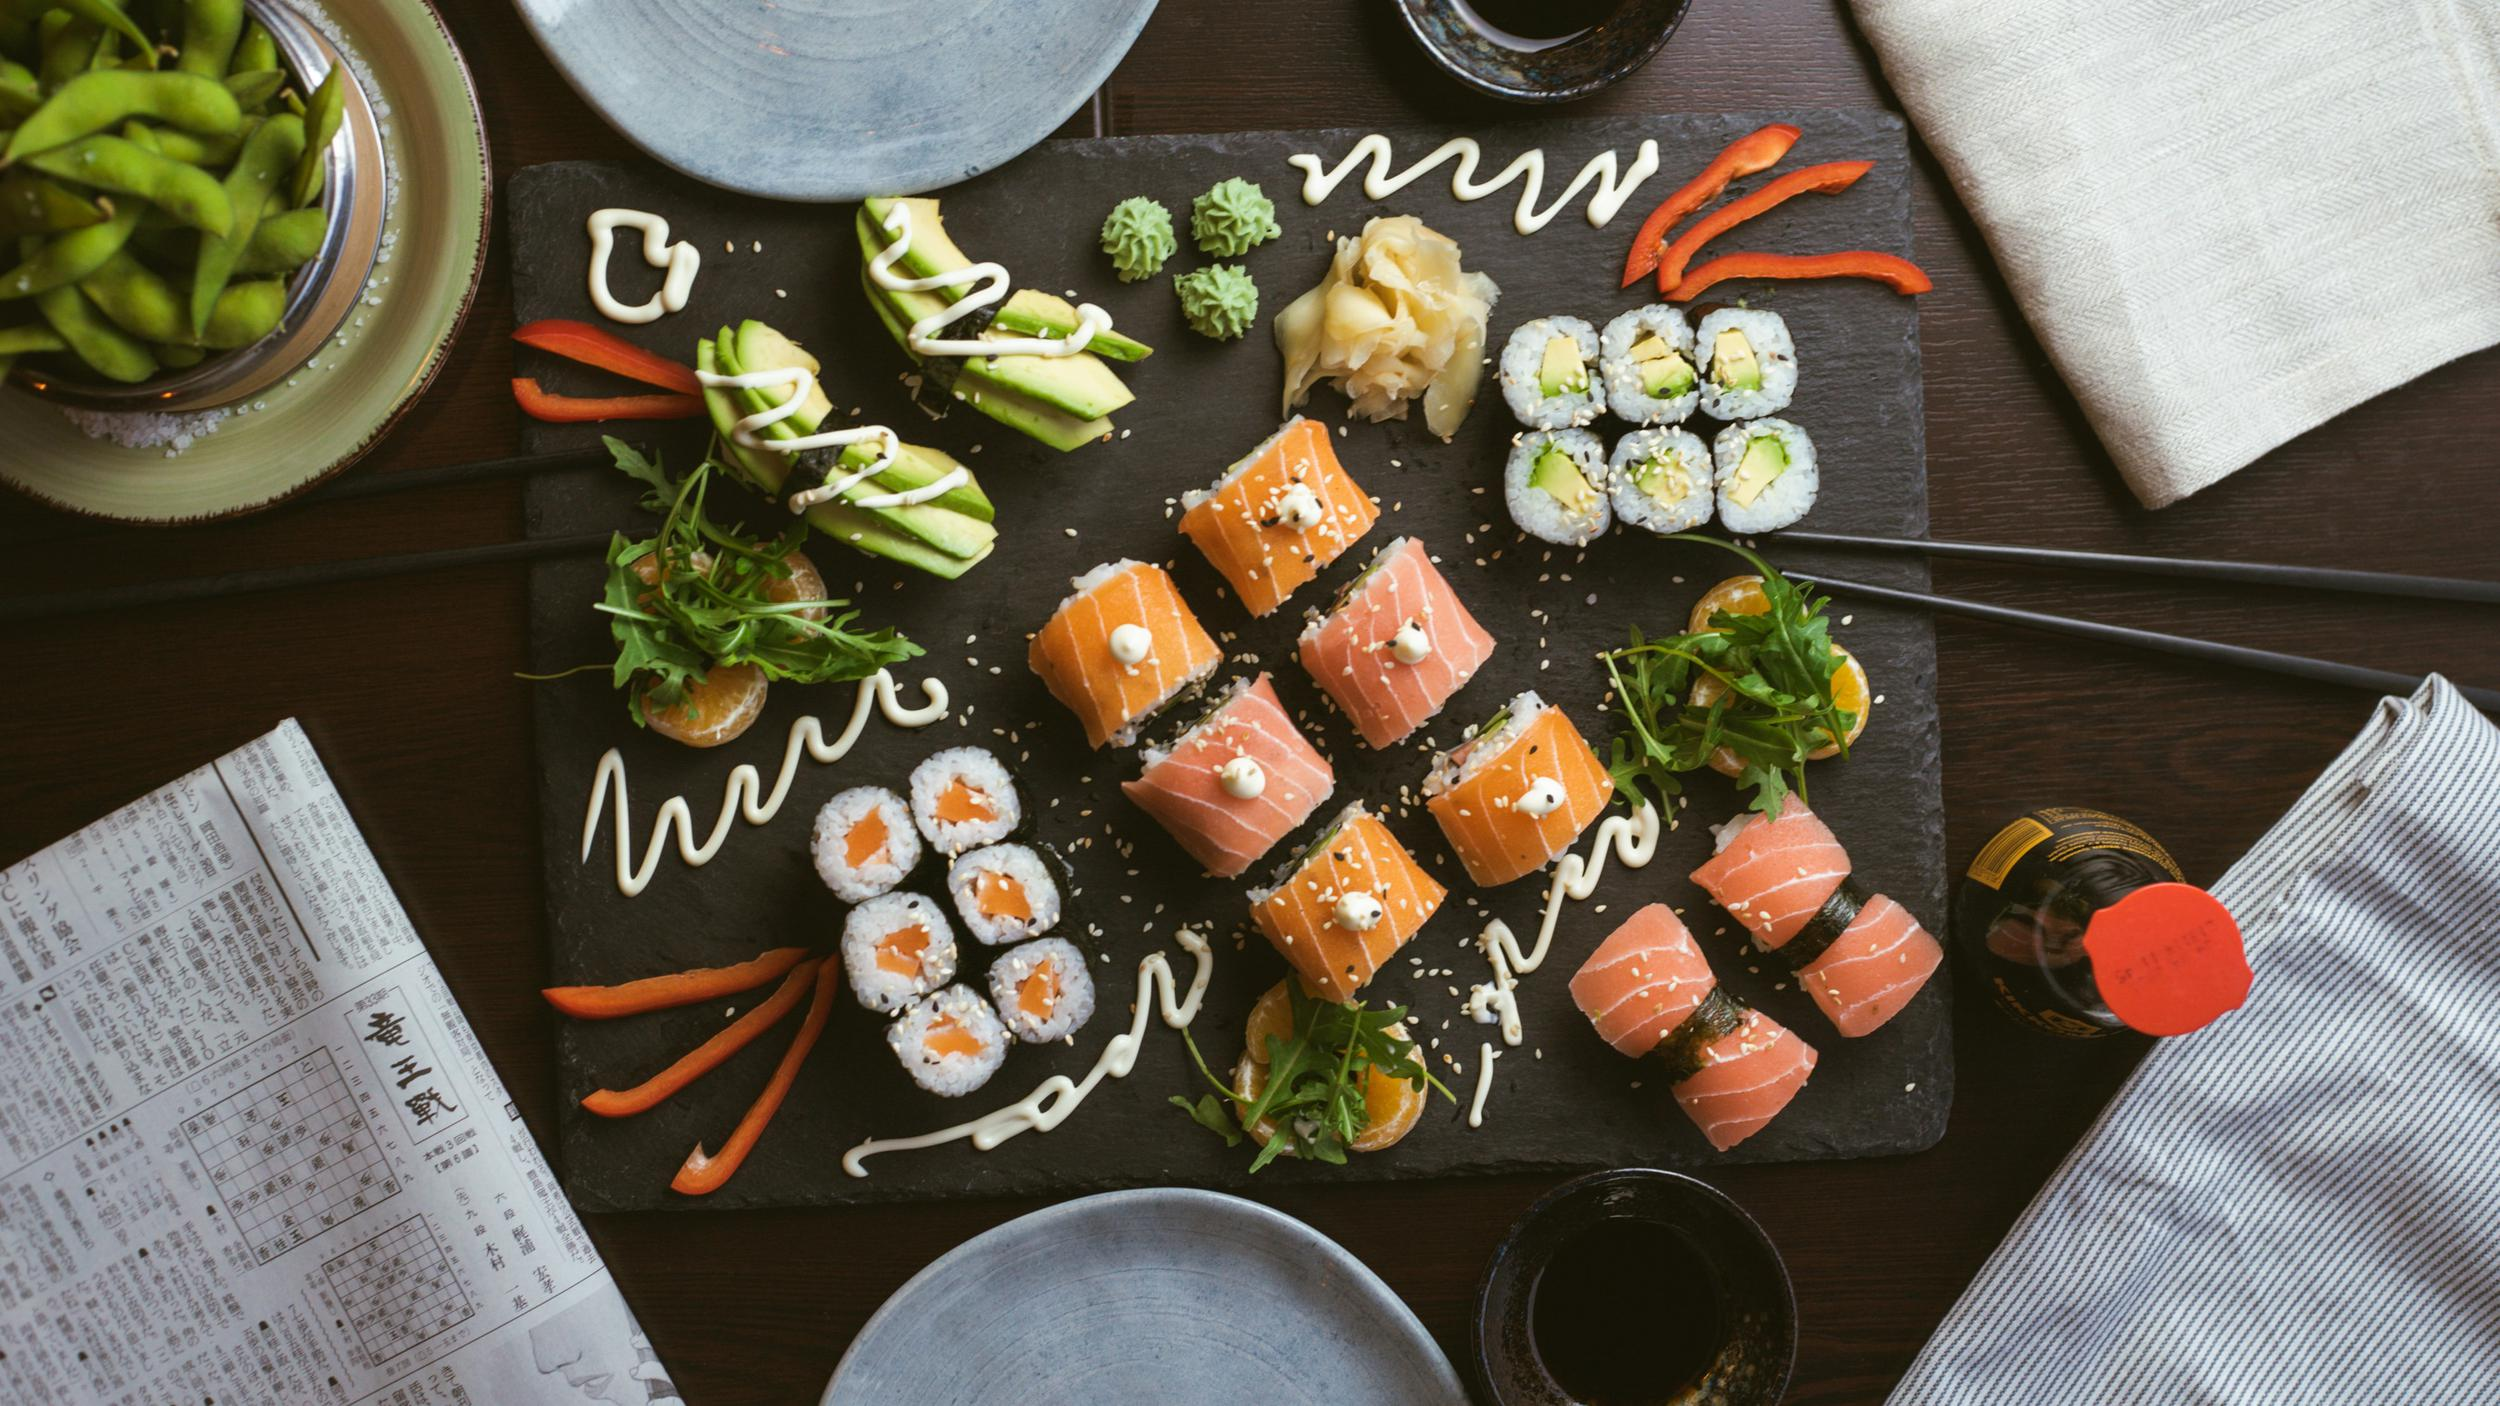 A platter of different kinds of sushi with sauce.